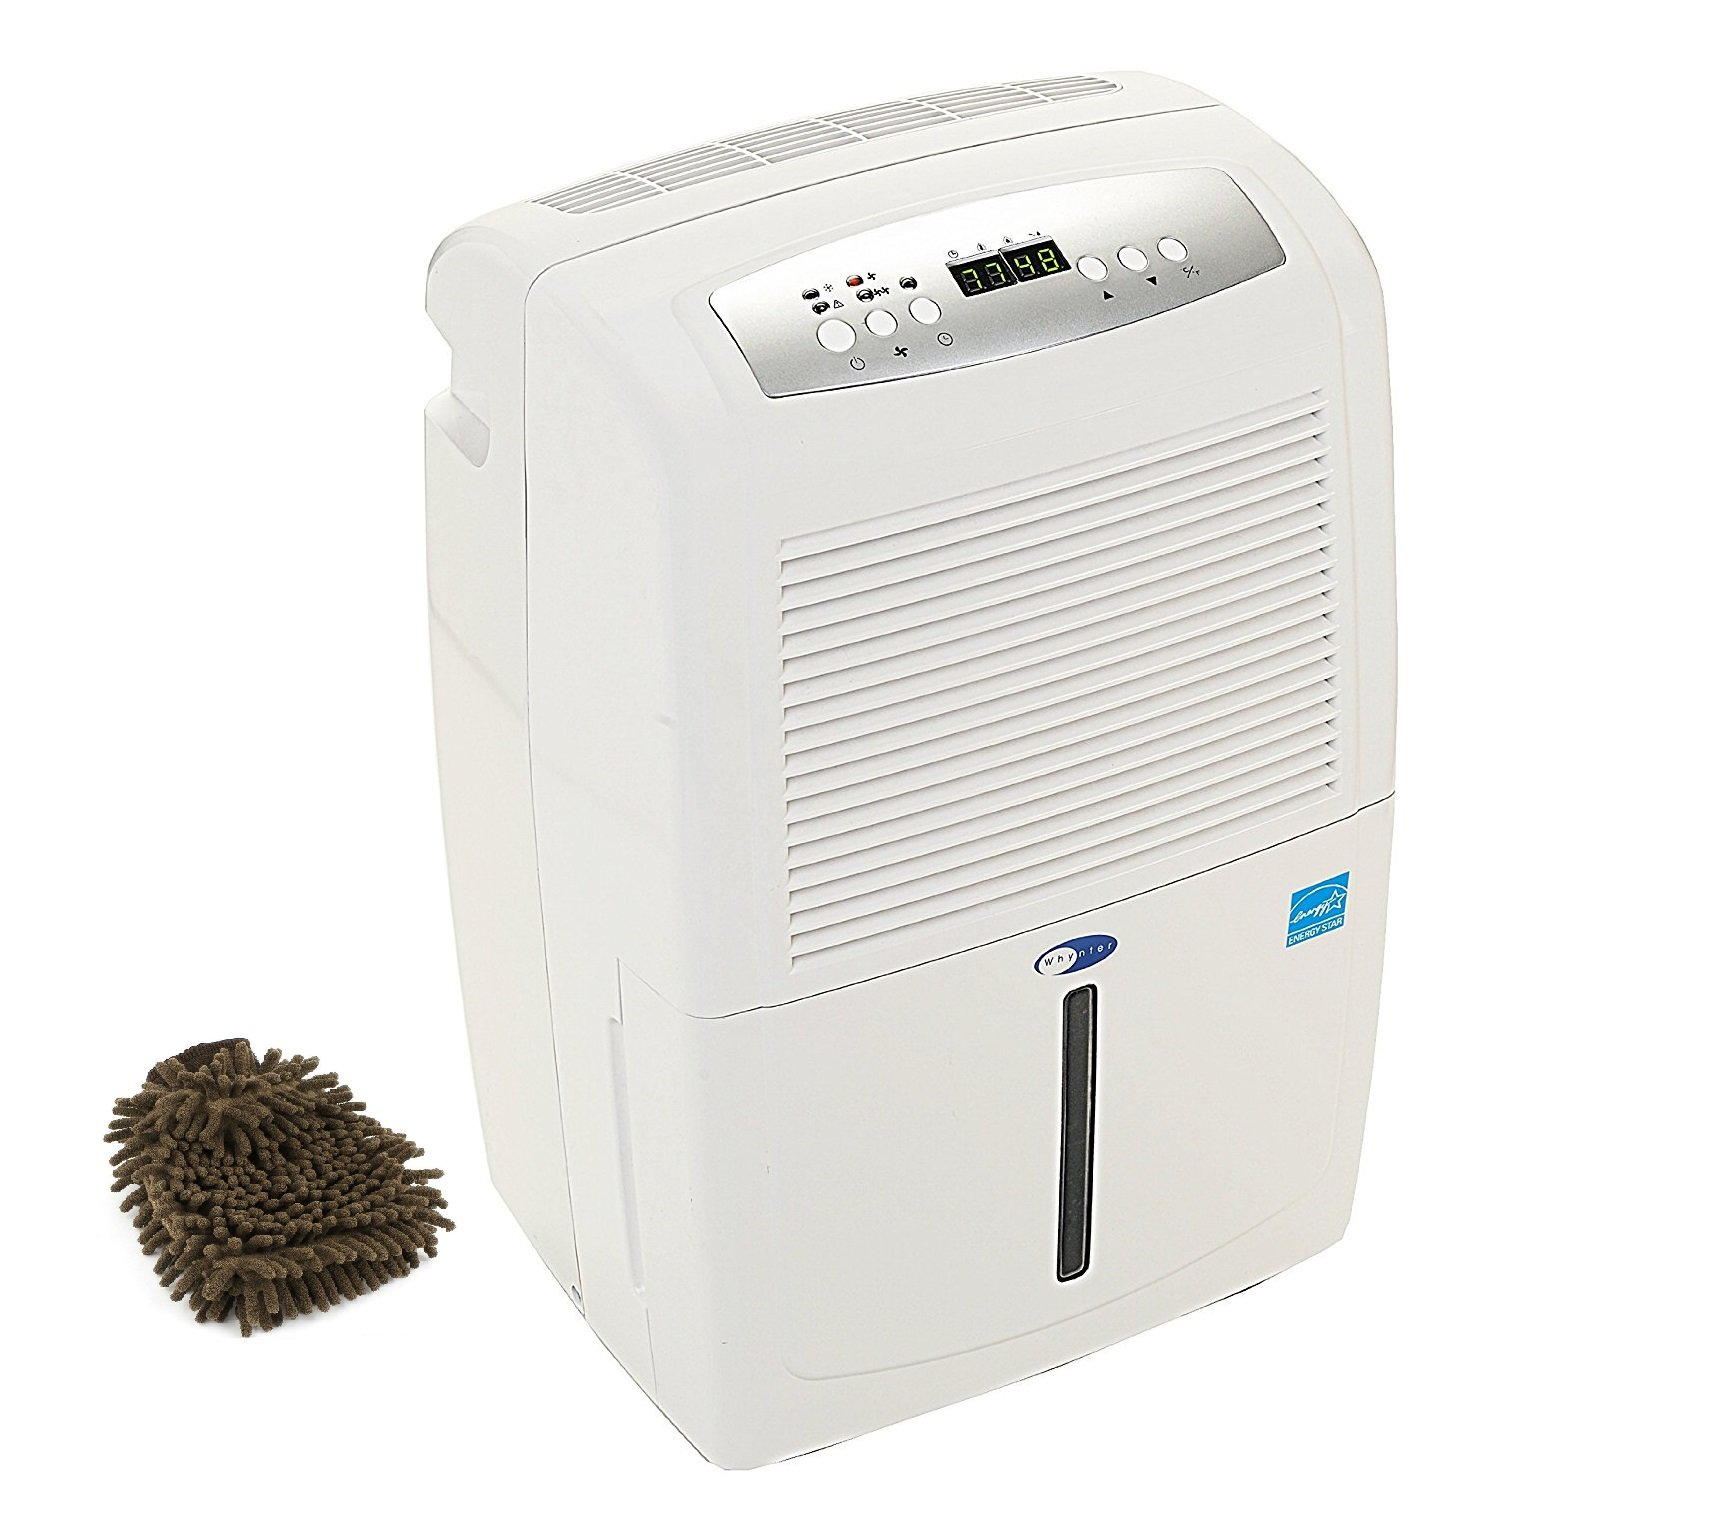 RPD-702WP Whynter Dehumidifier, Portable, Energy Star, 70-pint with Pump (Complete Set) w/ Bonus: Premium Microfiber Cleaner Bundle